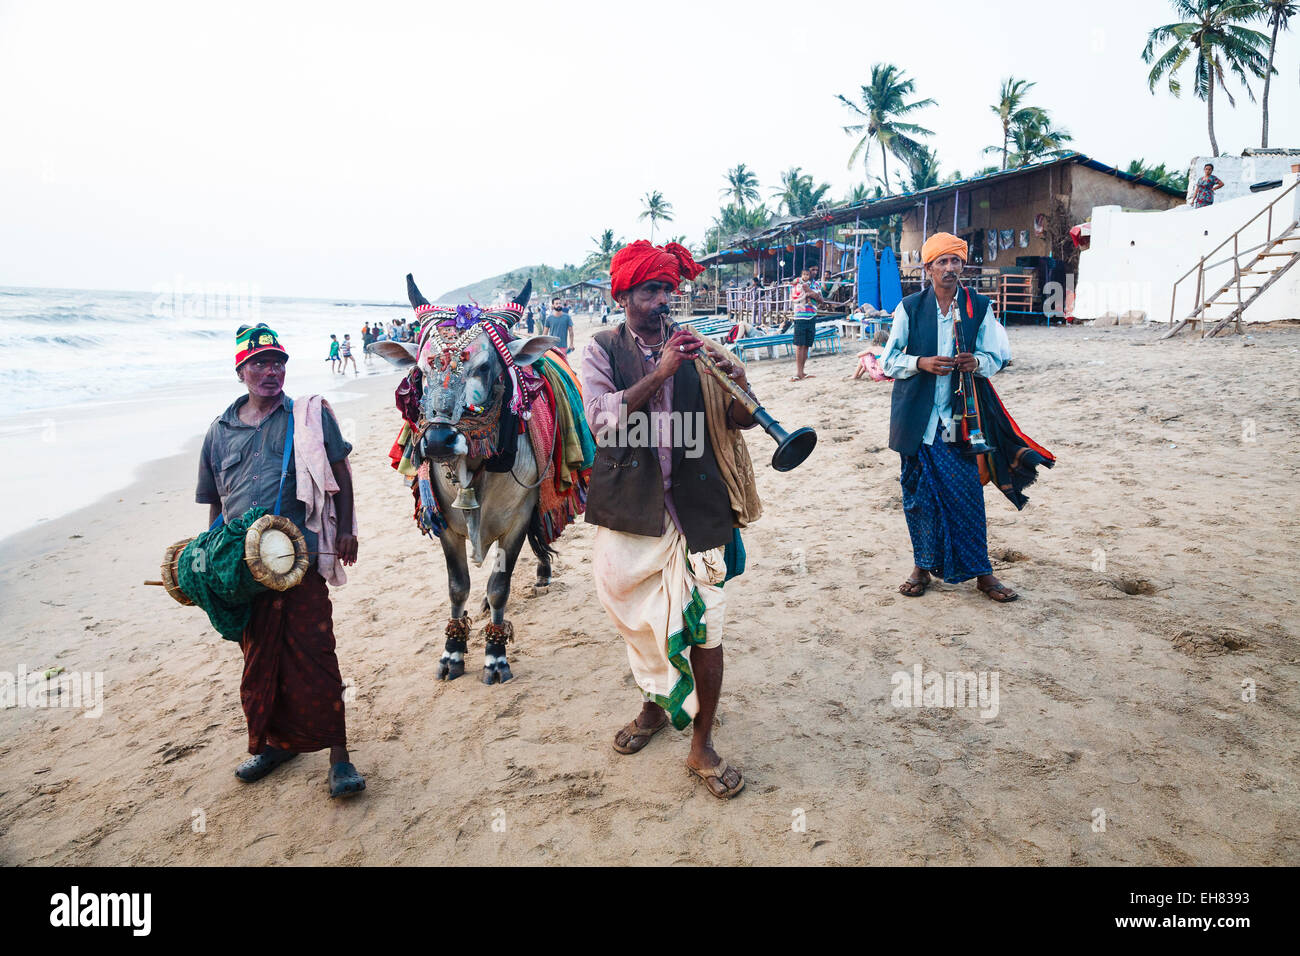 Performers on the beach, Goa, India, Asia - Stock Image